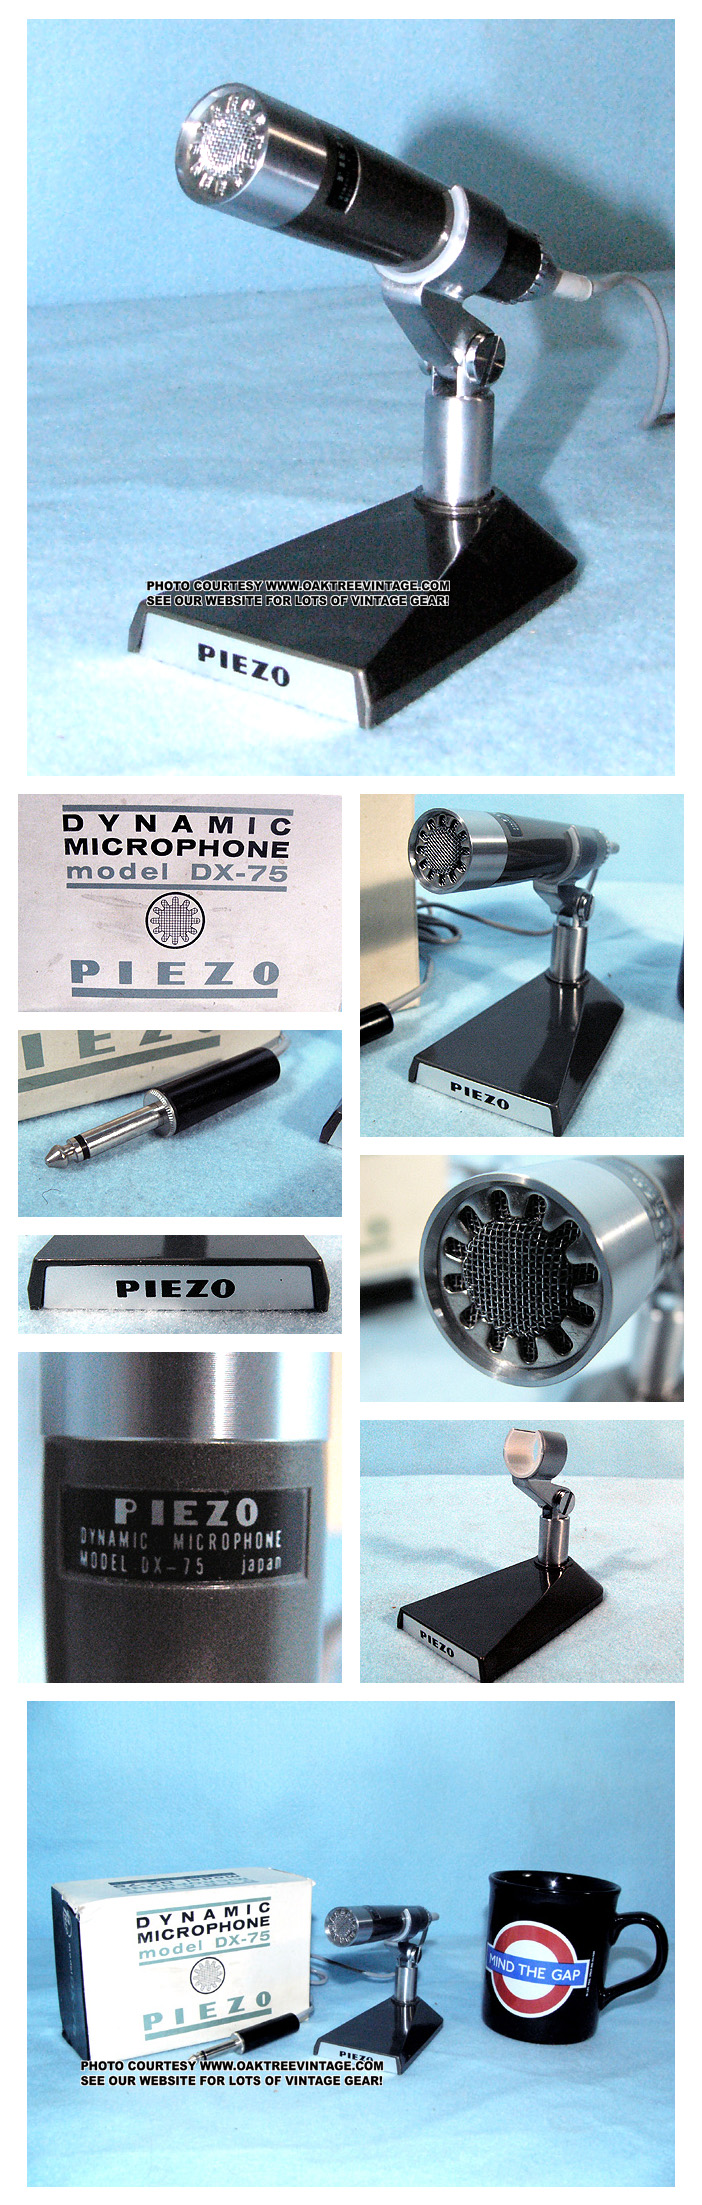 Vintage & Used Microphones for sale - 1950\'s, 1960\'s, 1970\'s & 1980\'s.